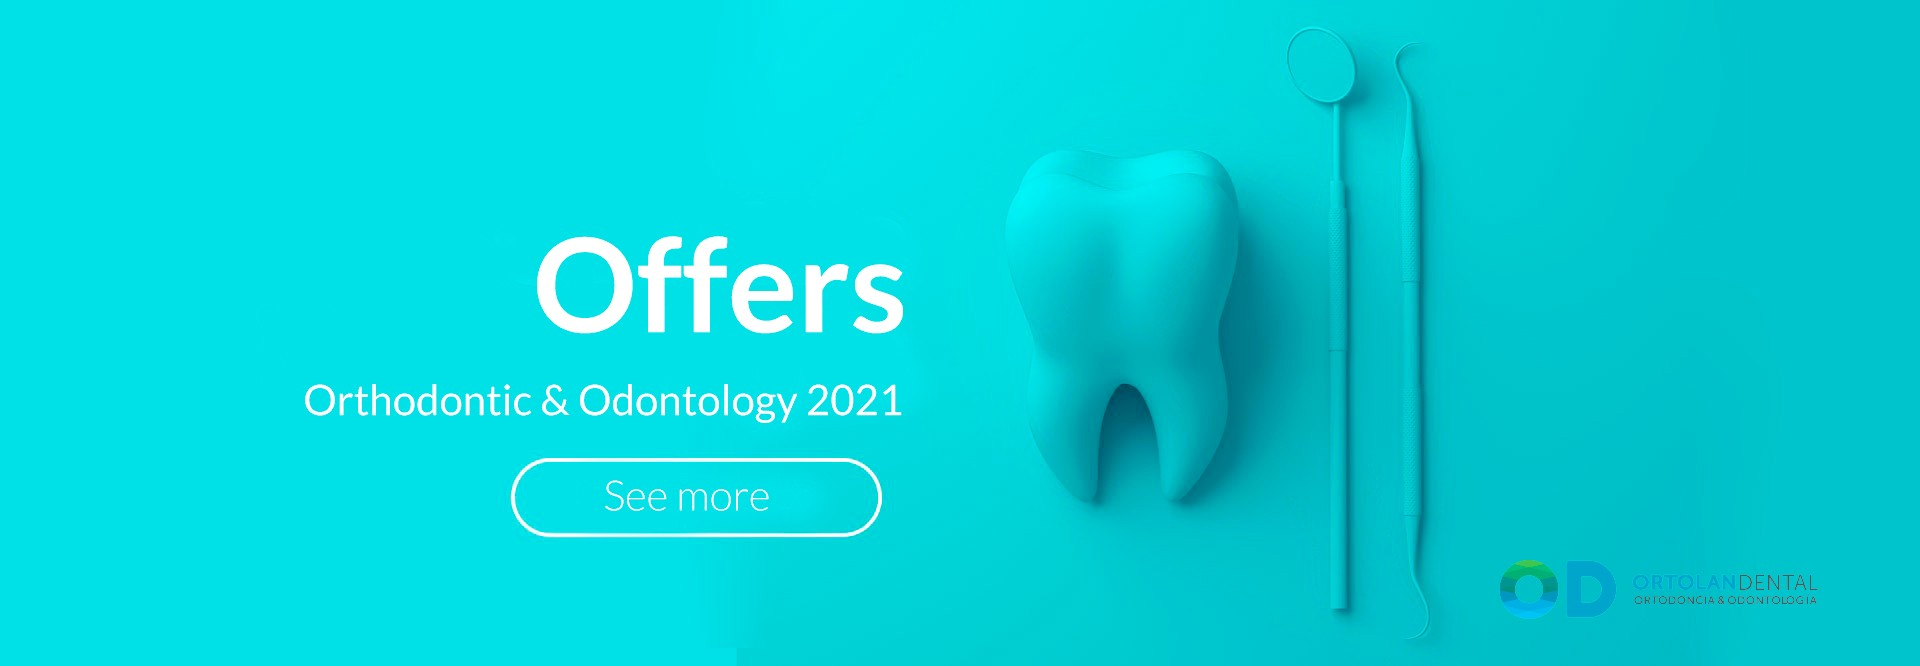 OFFERS IN ODONTOLOGY ORTOLAN